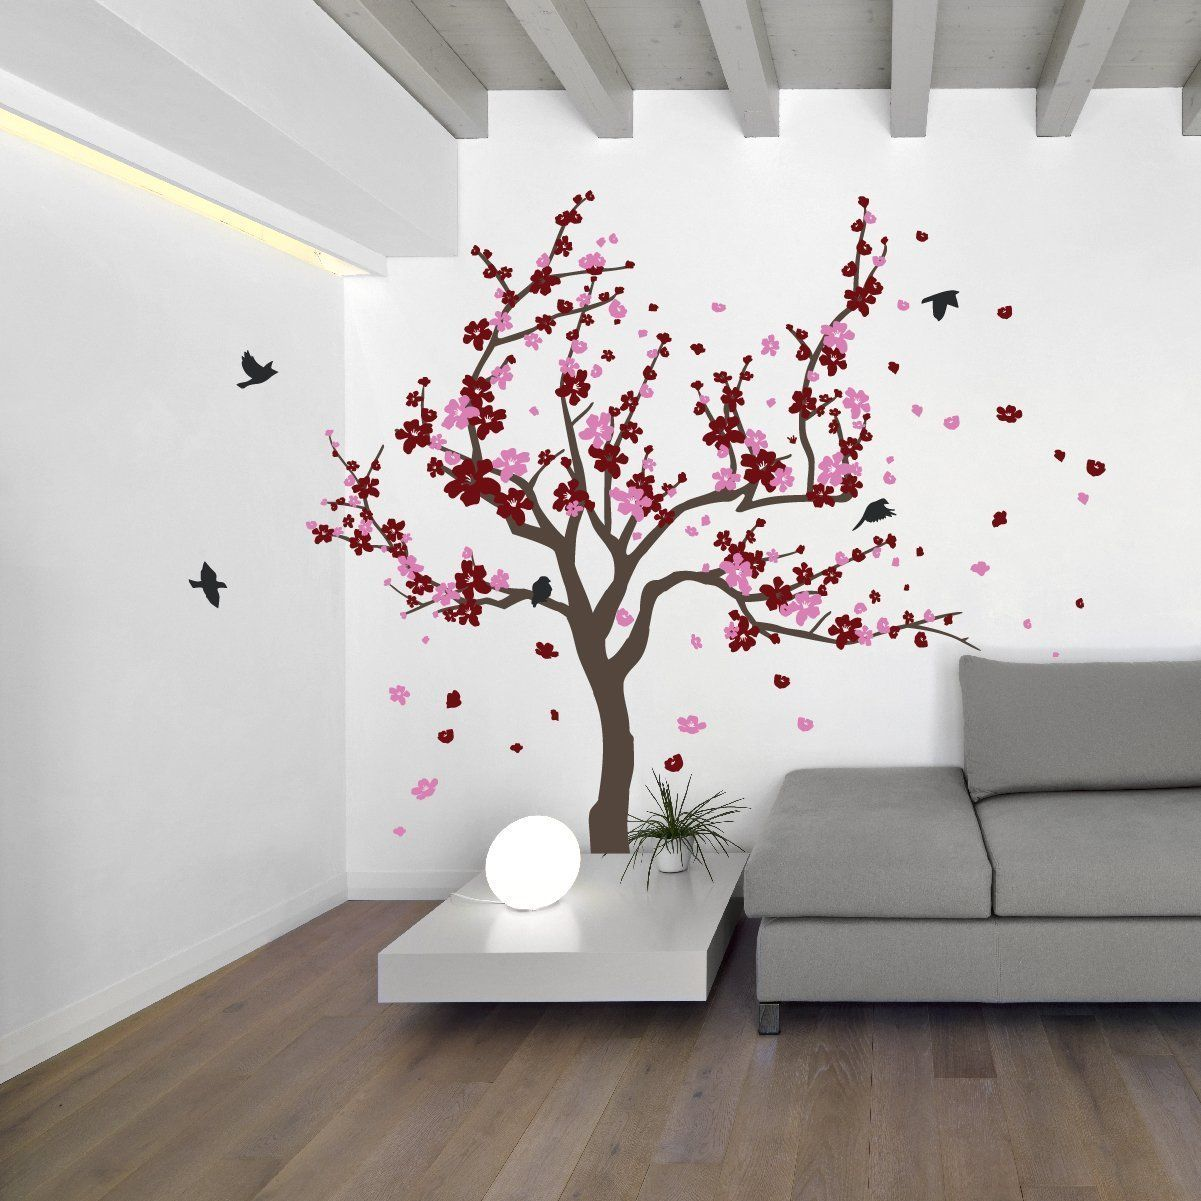 Japanese Cherry Blossom Tree And Birds Wall Decal Sticker For Flower Baby Nursery Room Decor Art Burgund Tree Wall Decal Japanese Cherry Tree Tree Wall Murals